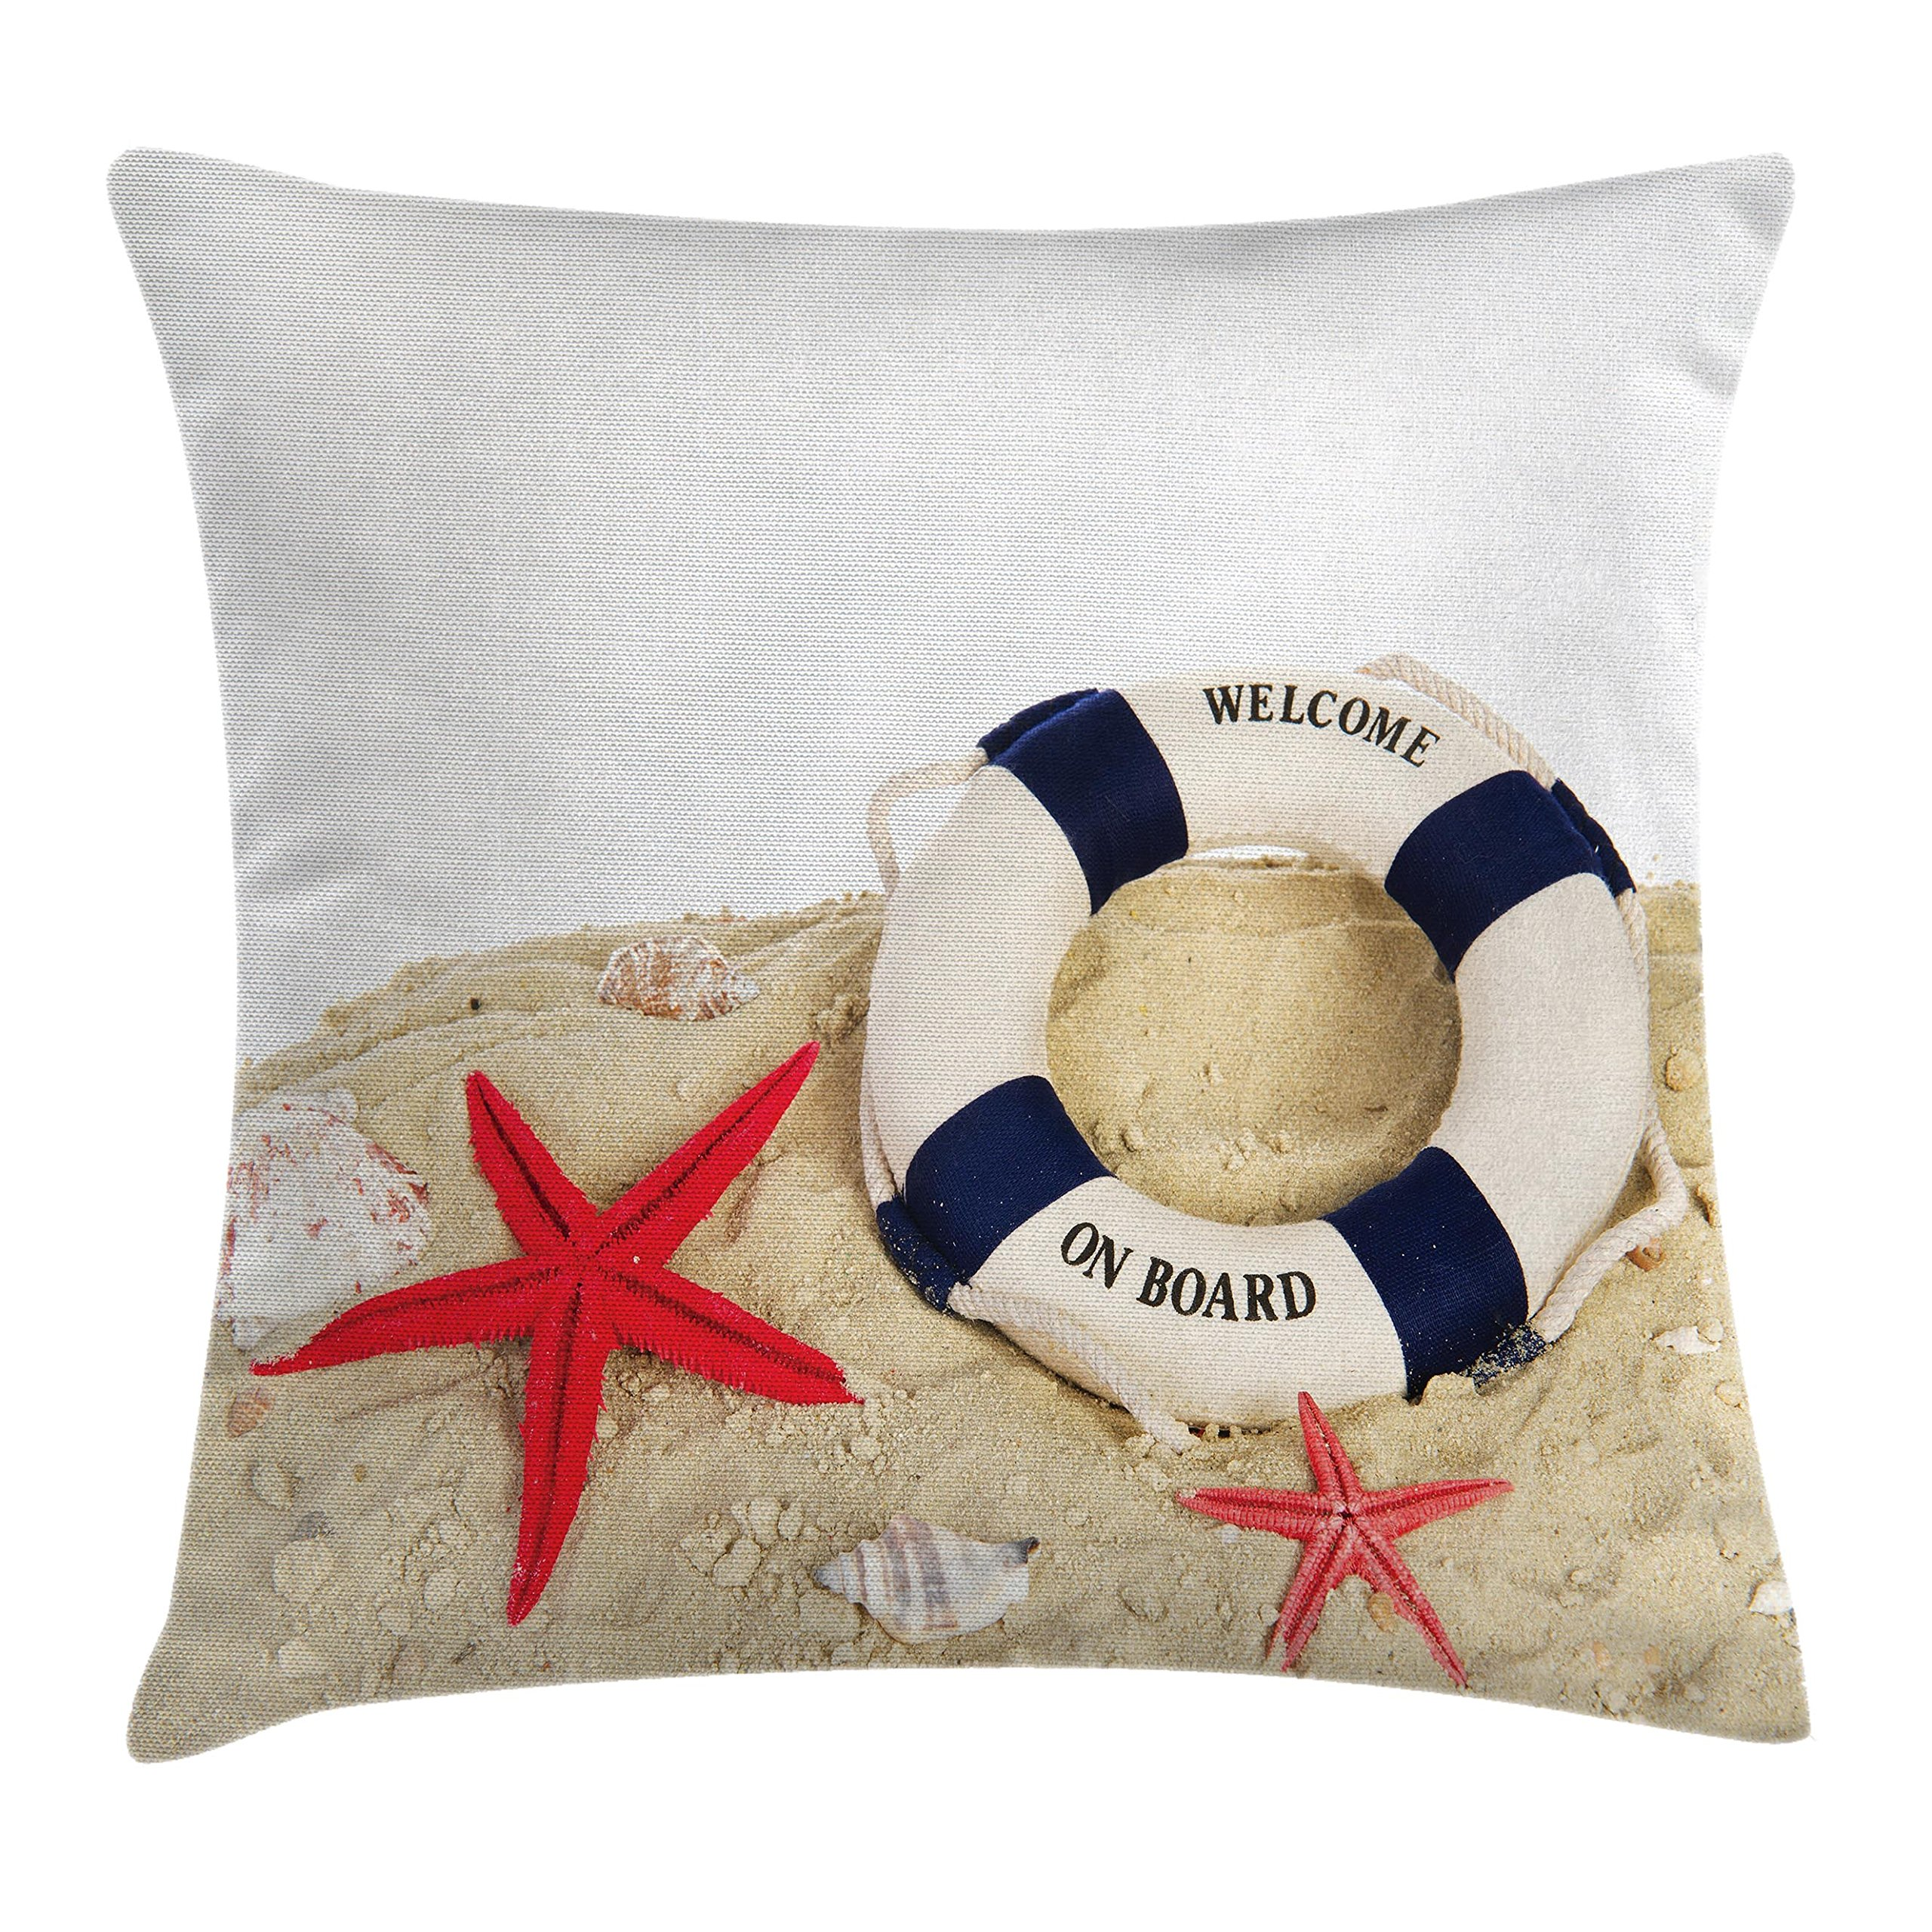 Ambesonne Buoy Decor Throw Pillow Cushion Cover, Life Buoy and Shells Starfishes at Sandy Beach Coast Seaside Transport, Decorative Square Accent Pillow Case, 20 X 20 Inches, Blue Red and White